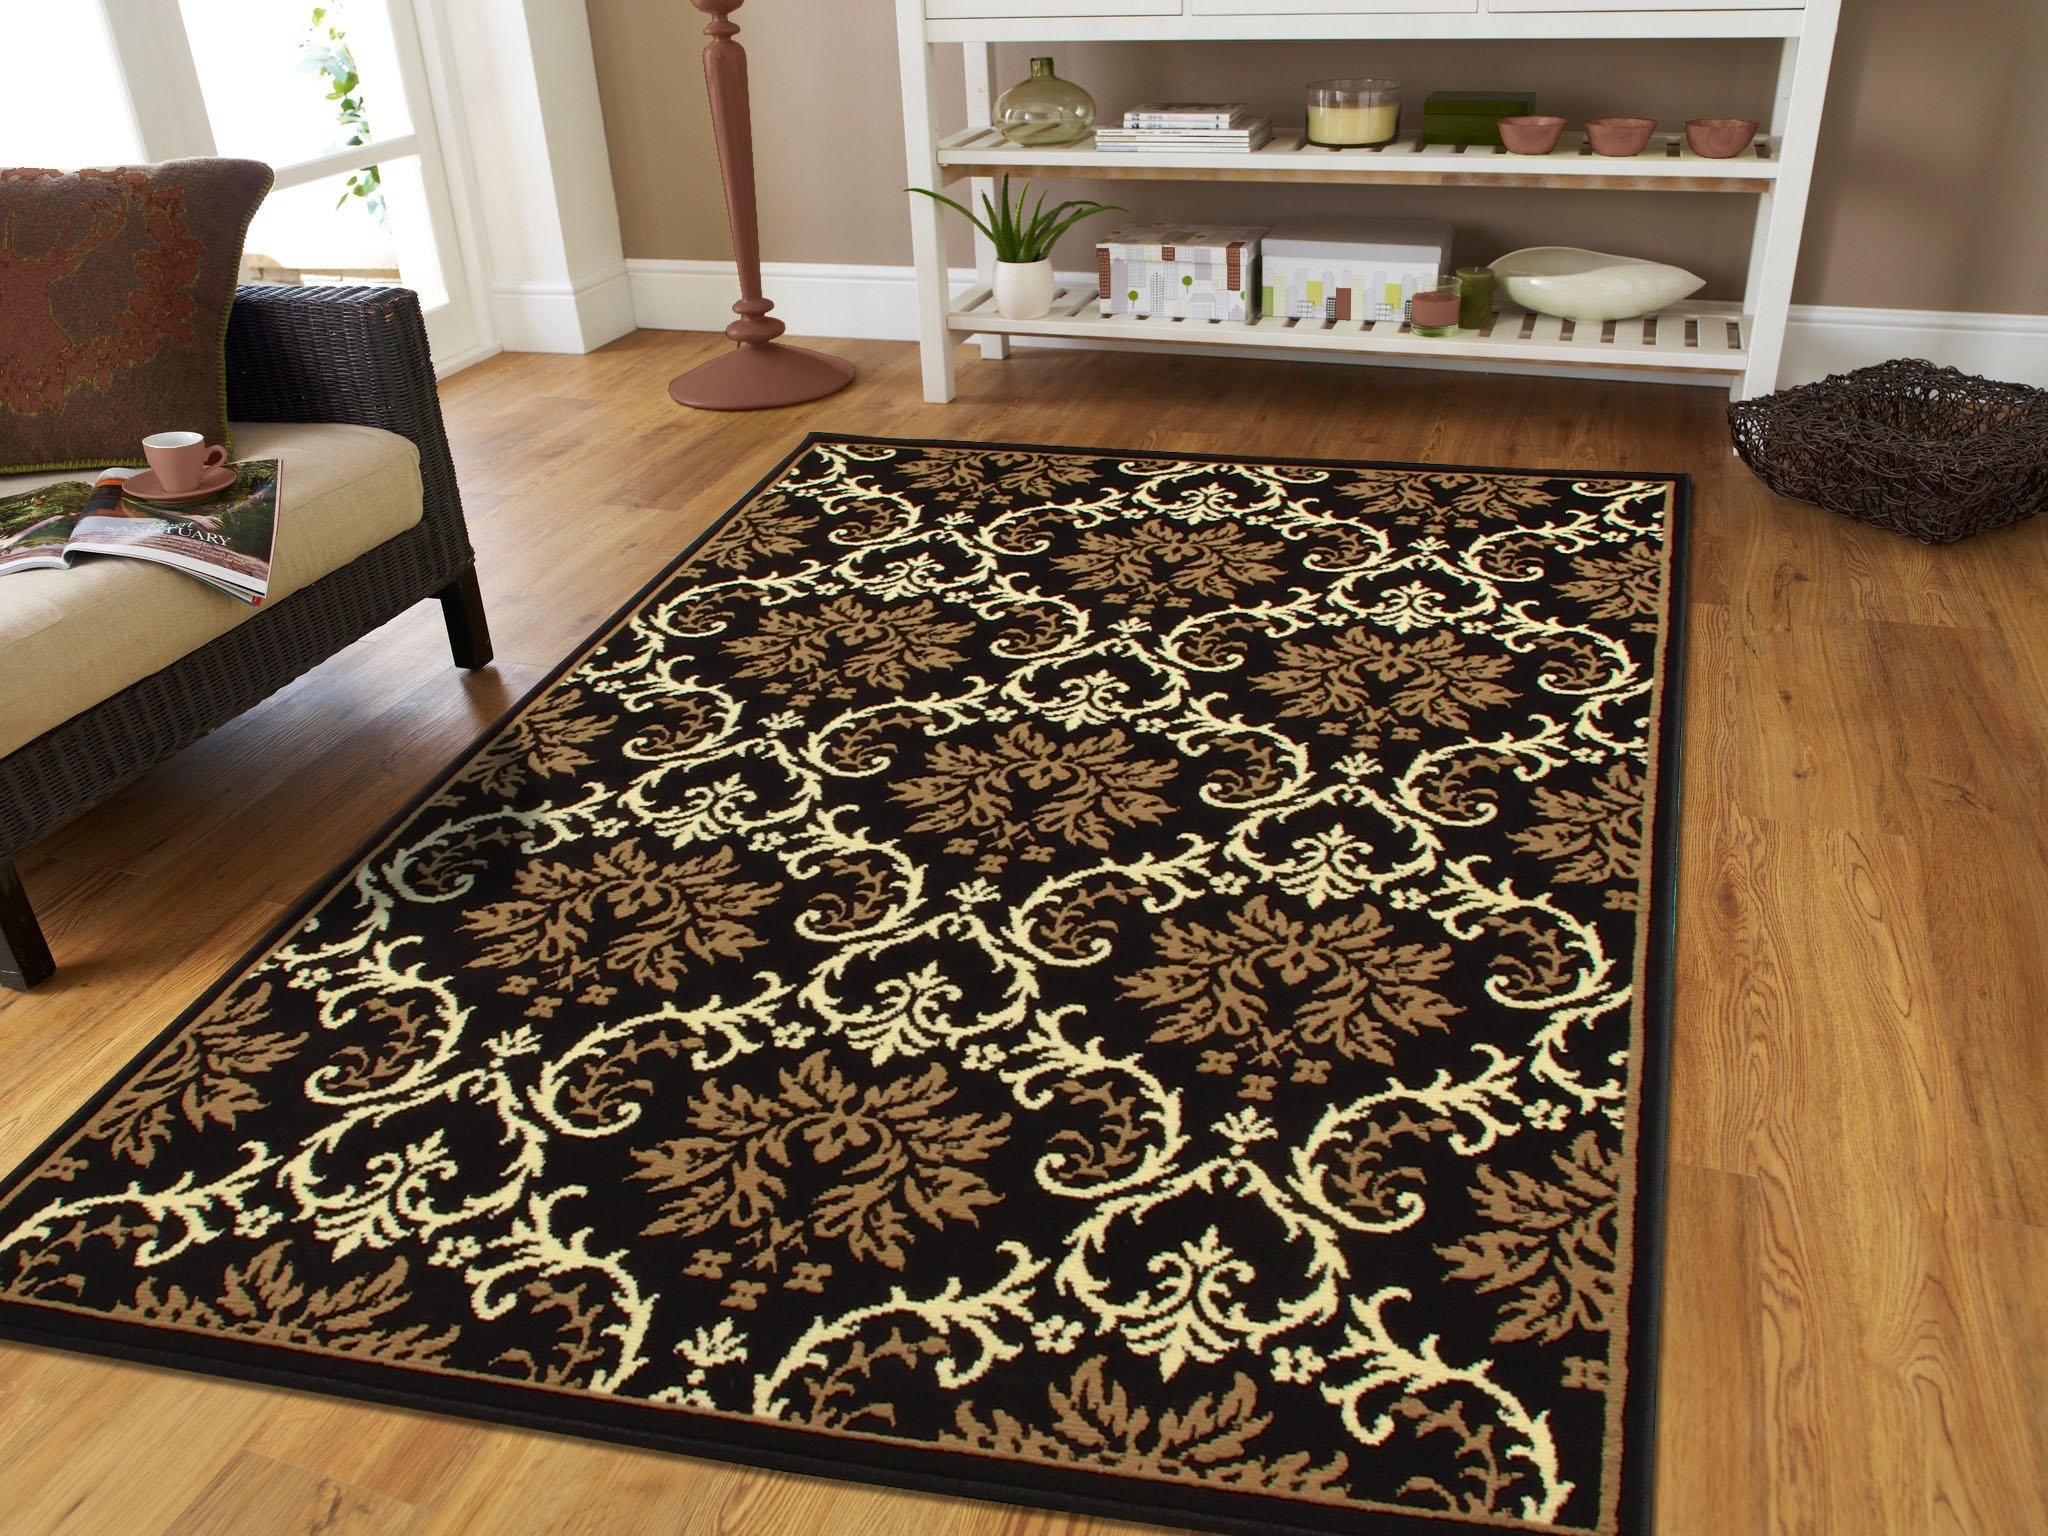 Buy Large 8x11 Contemporary Rug Modern Area Rug 8x10